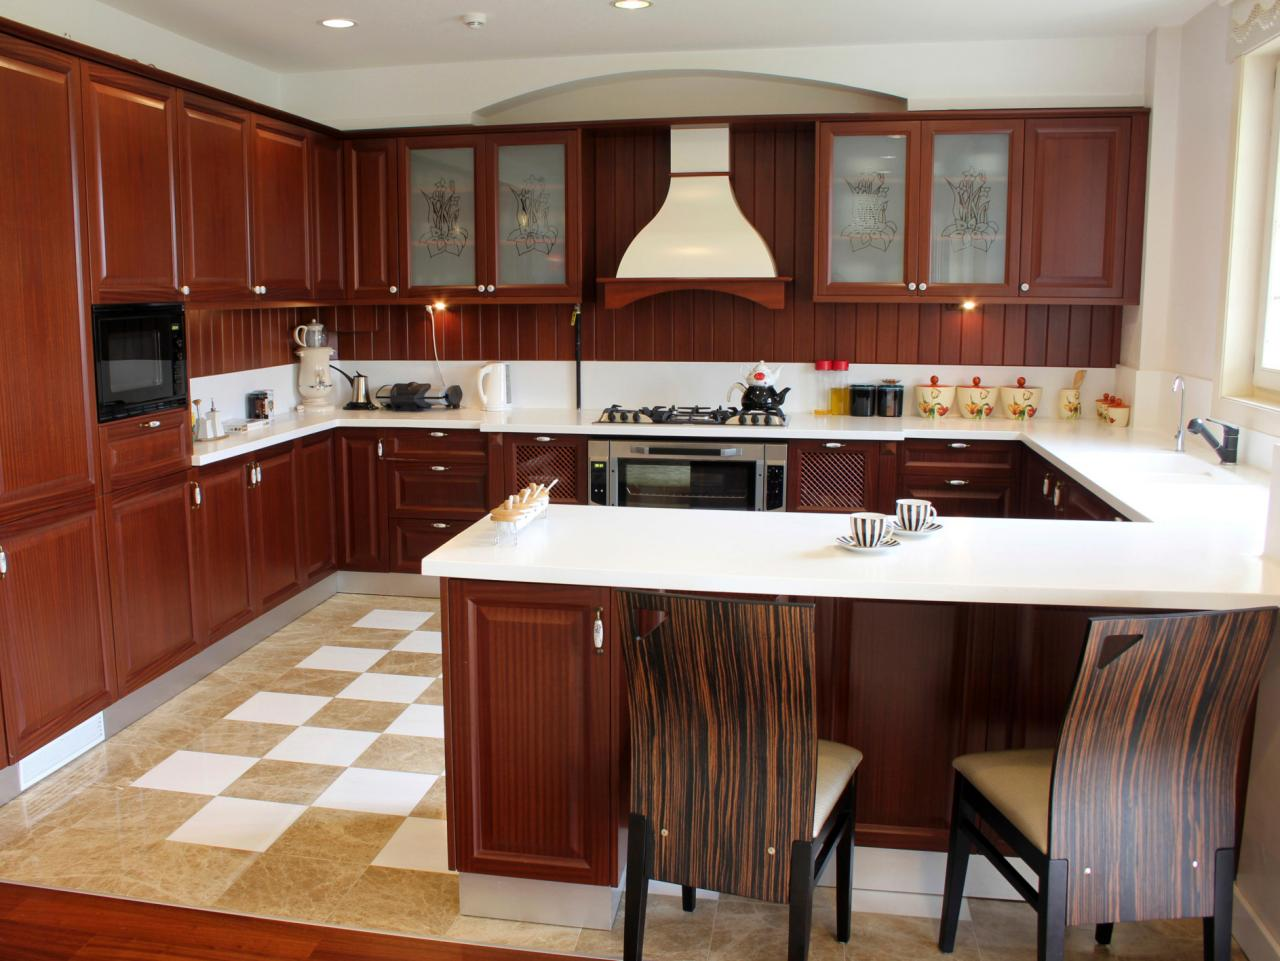 Remodeling Old Kitchen Old Kitchens The Best Home Design